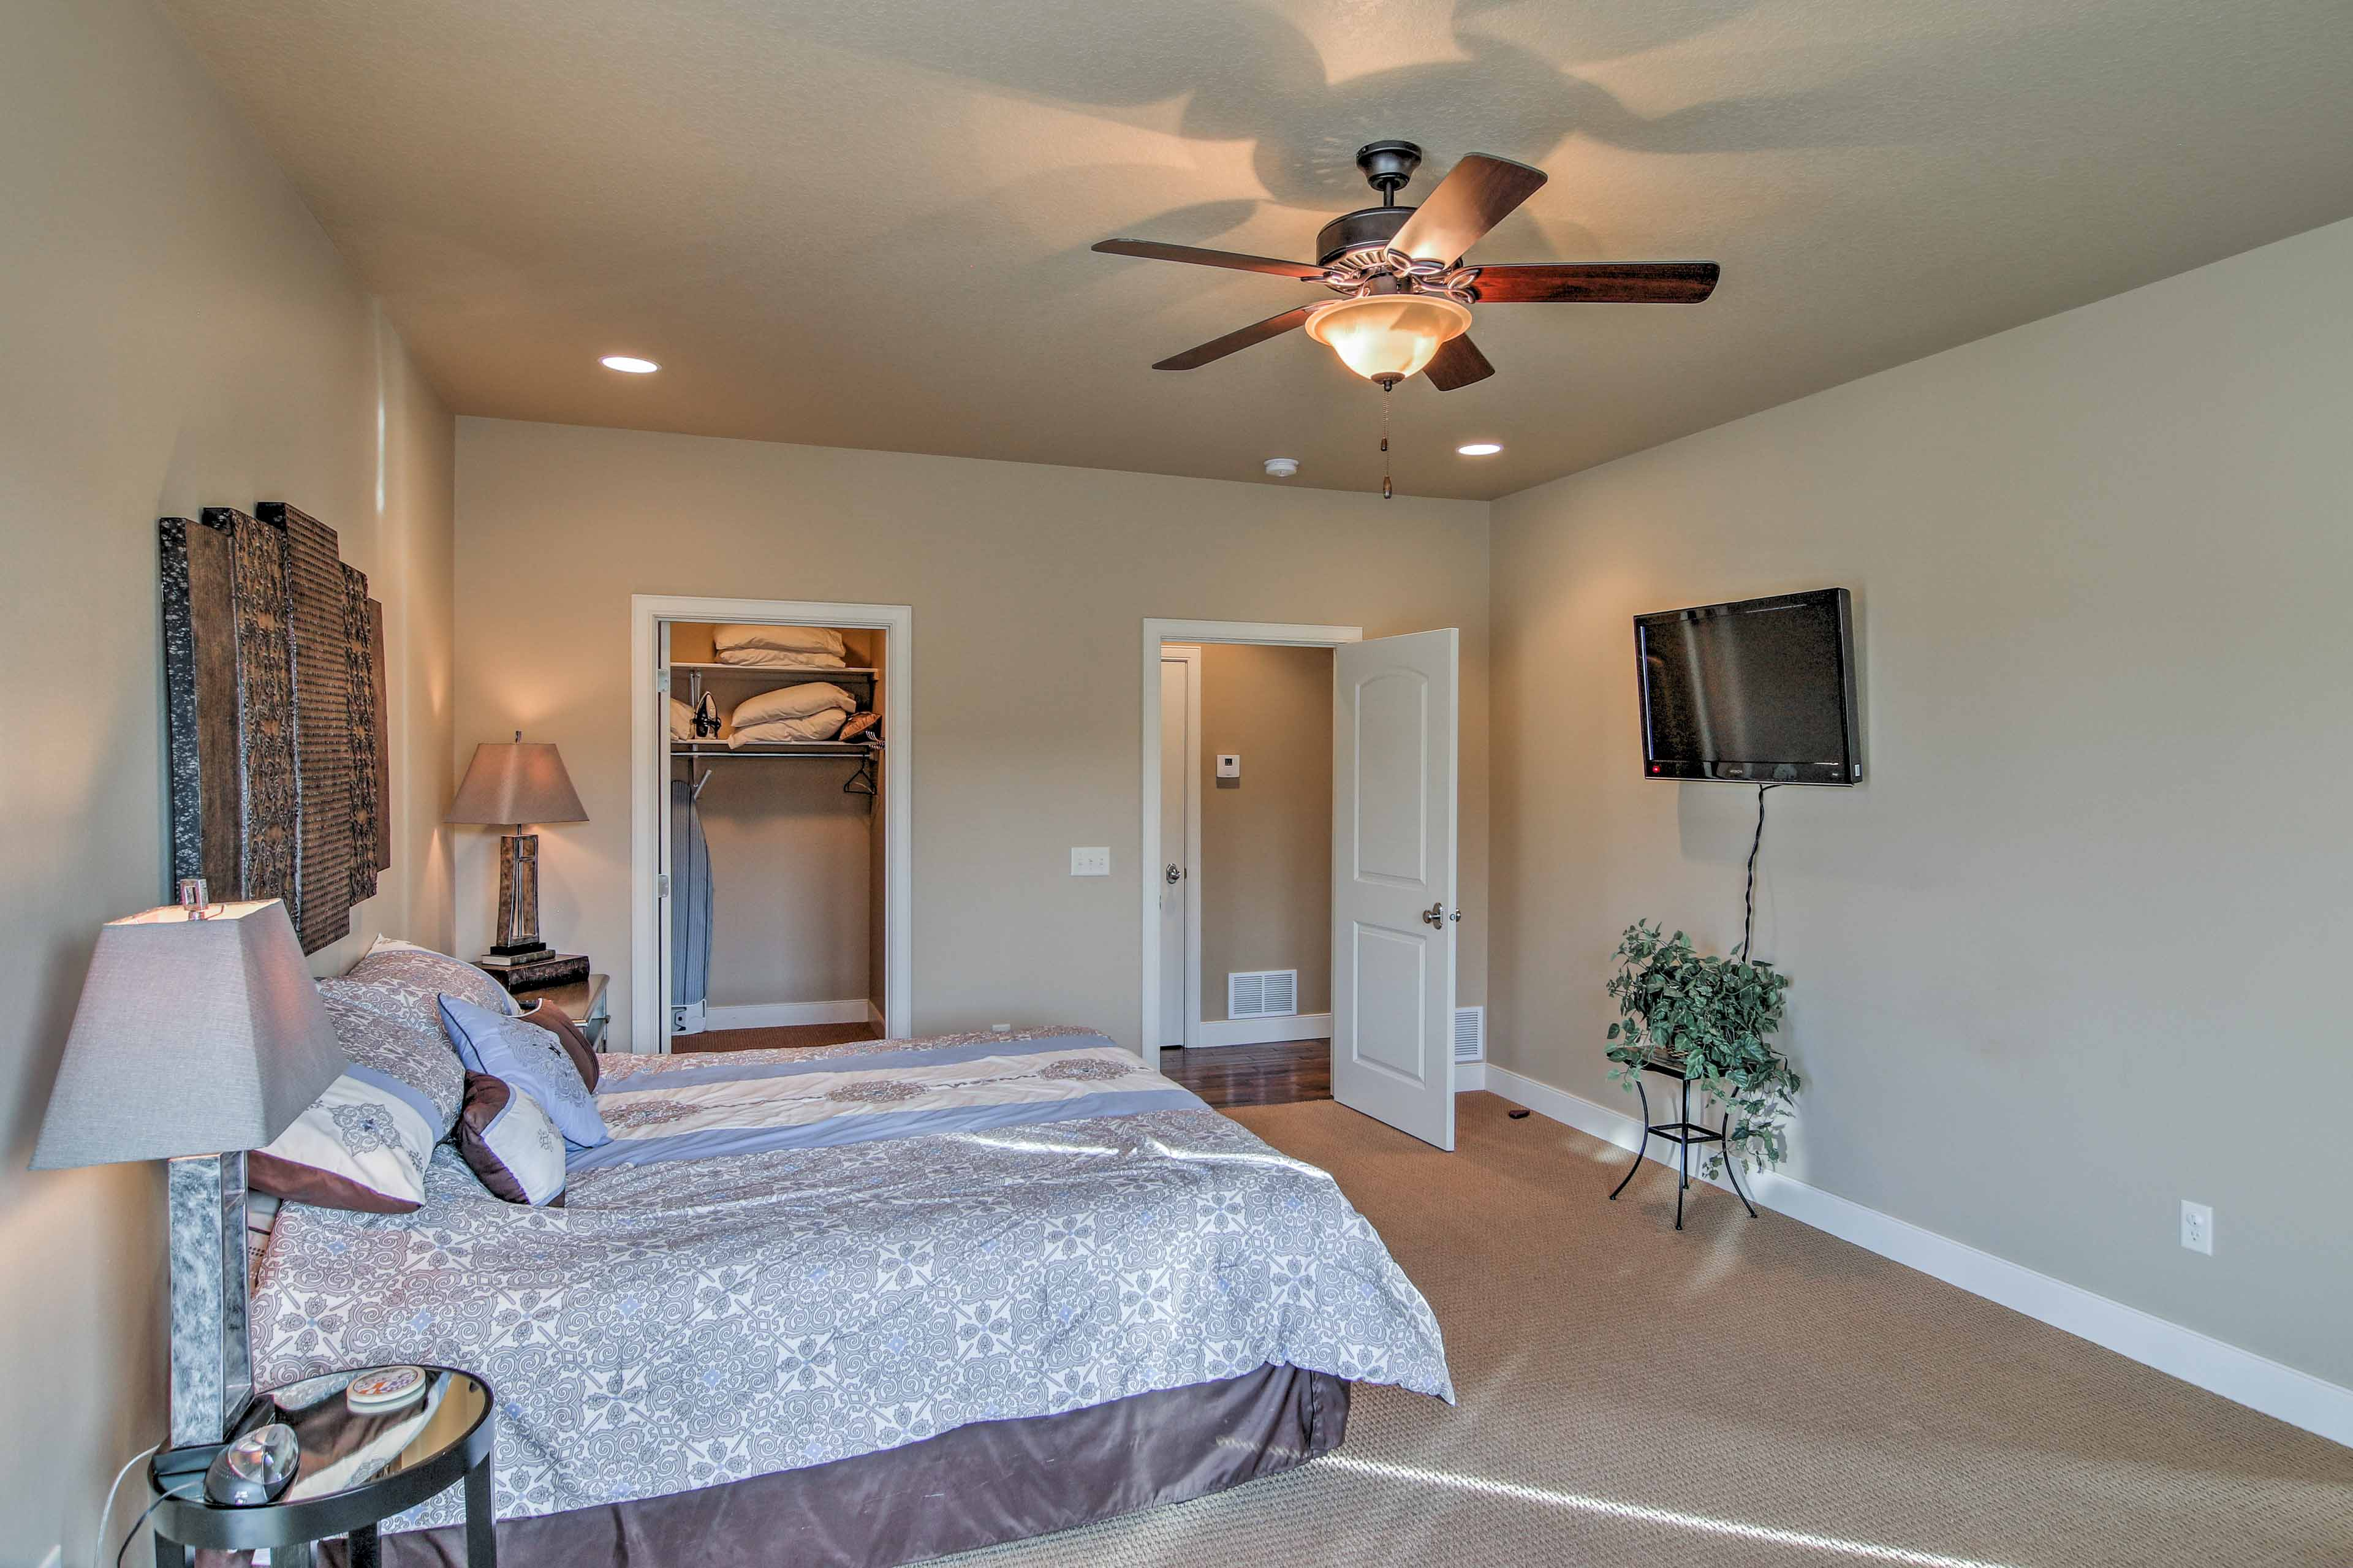 The master bedroom features a flat-screen TV, pullout couch, and balcony access.